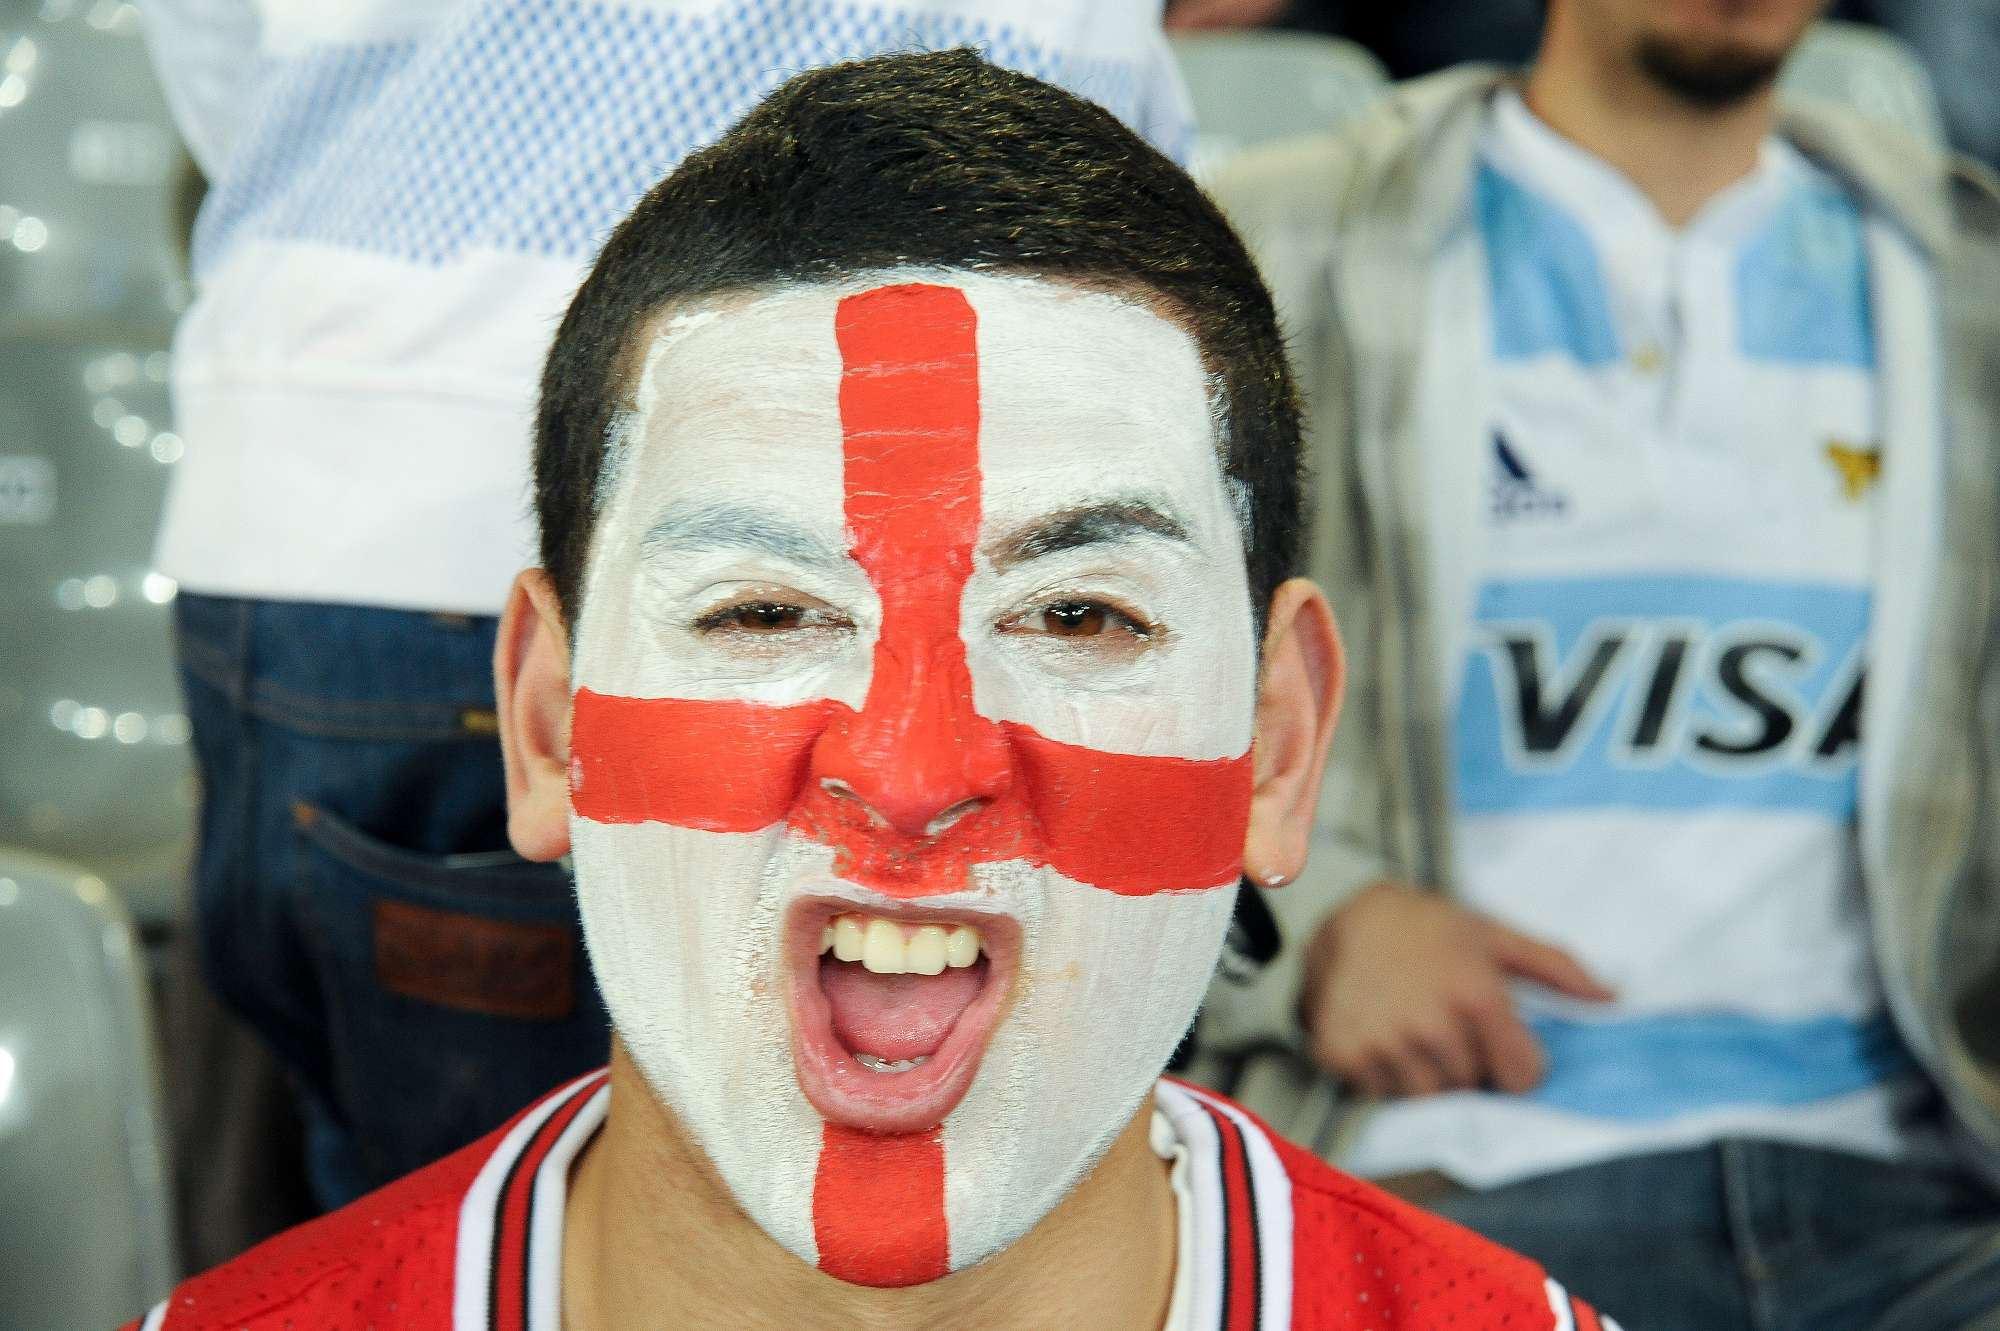 Supporter at England v Argentina Match